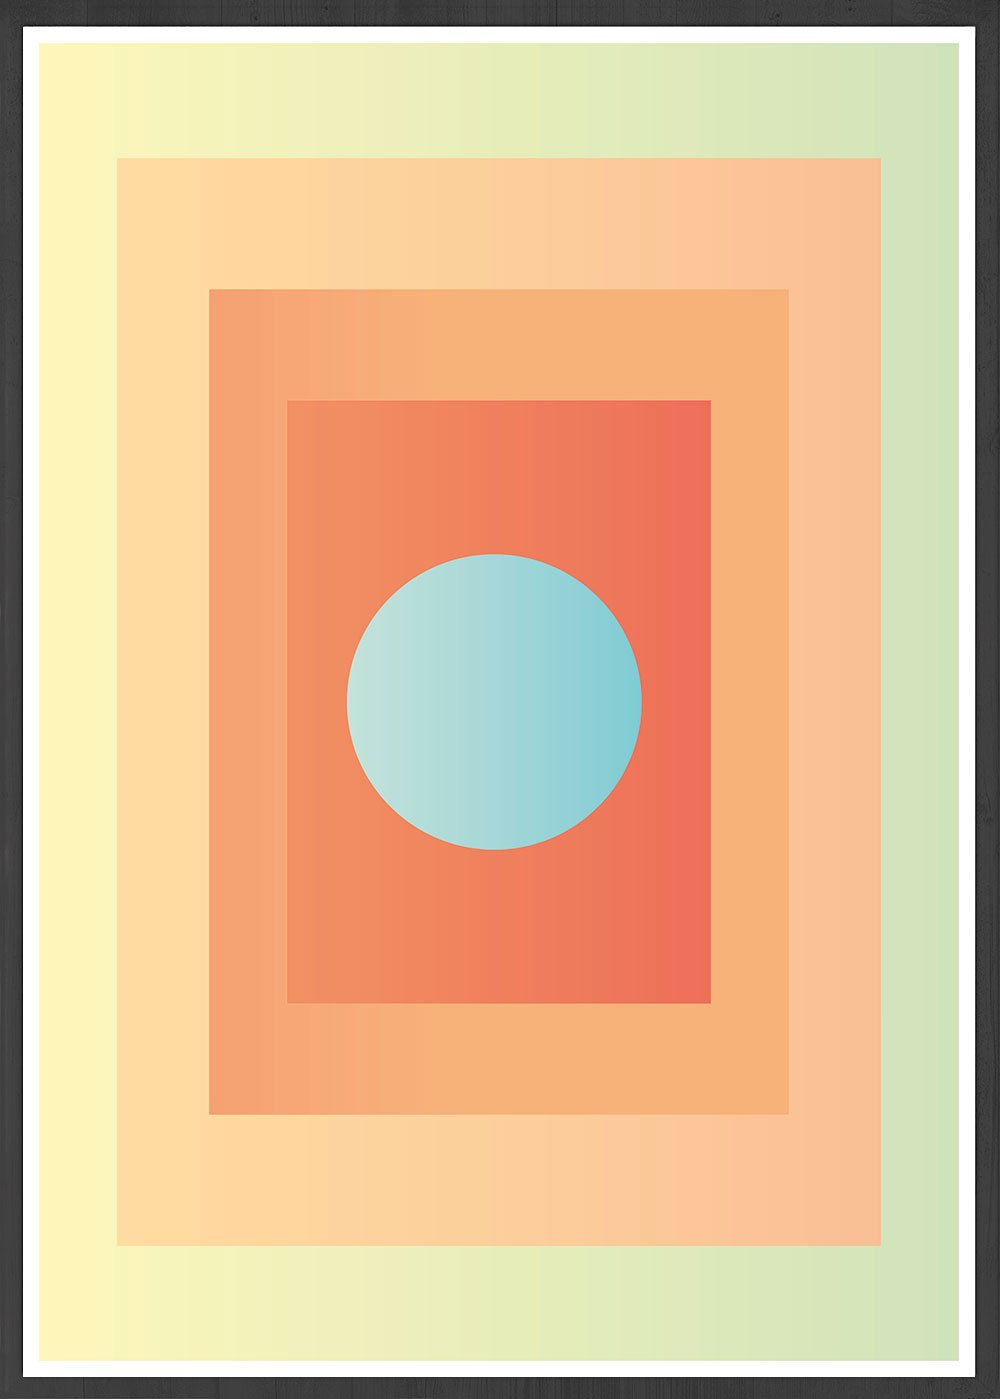 Egg Minimal Wall Art in a frame